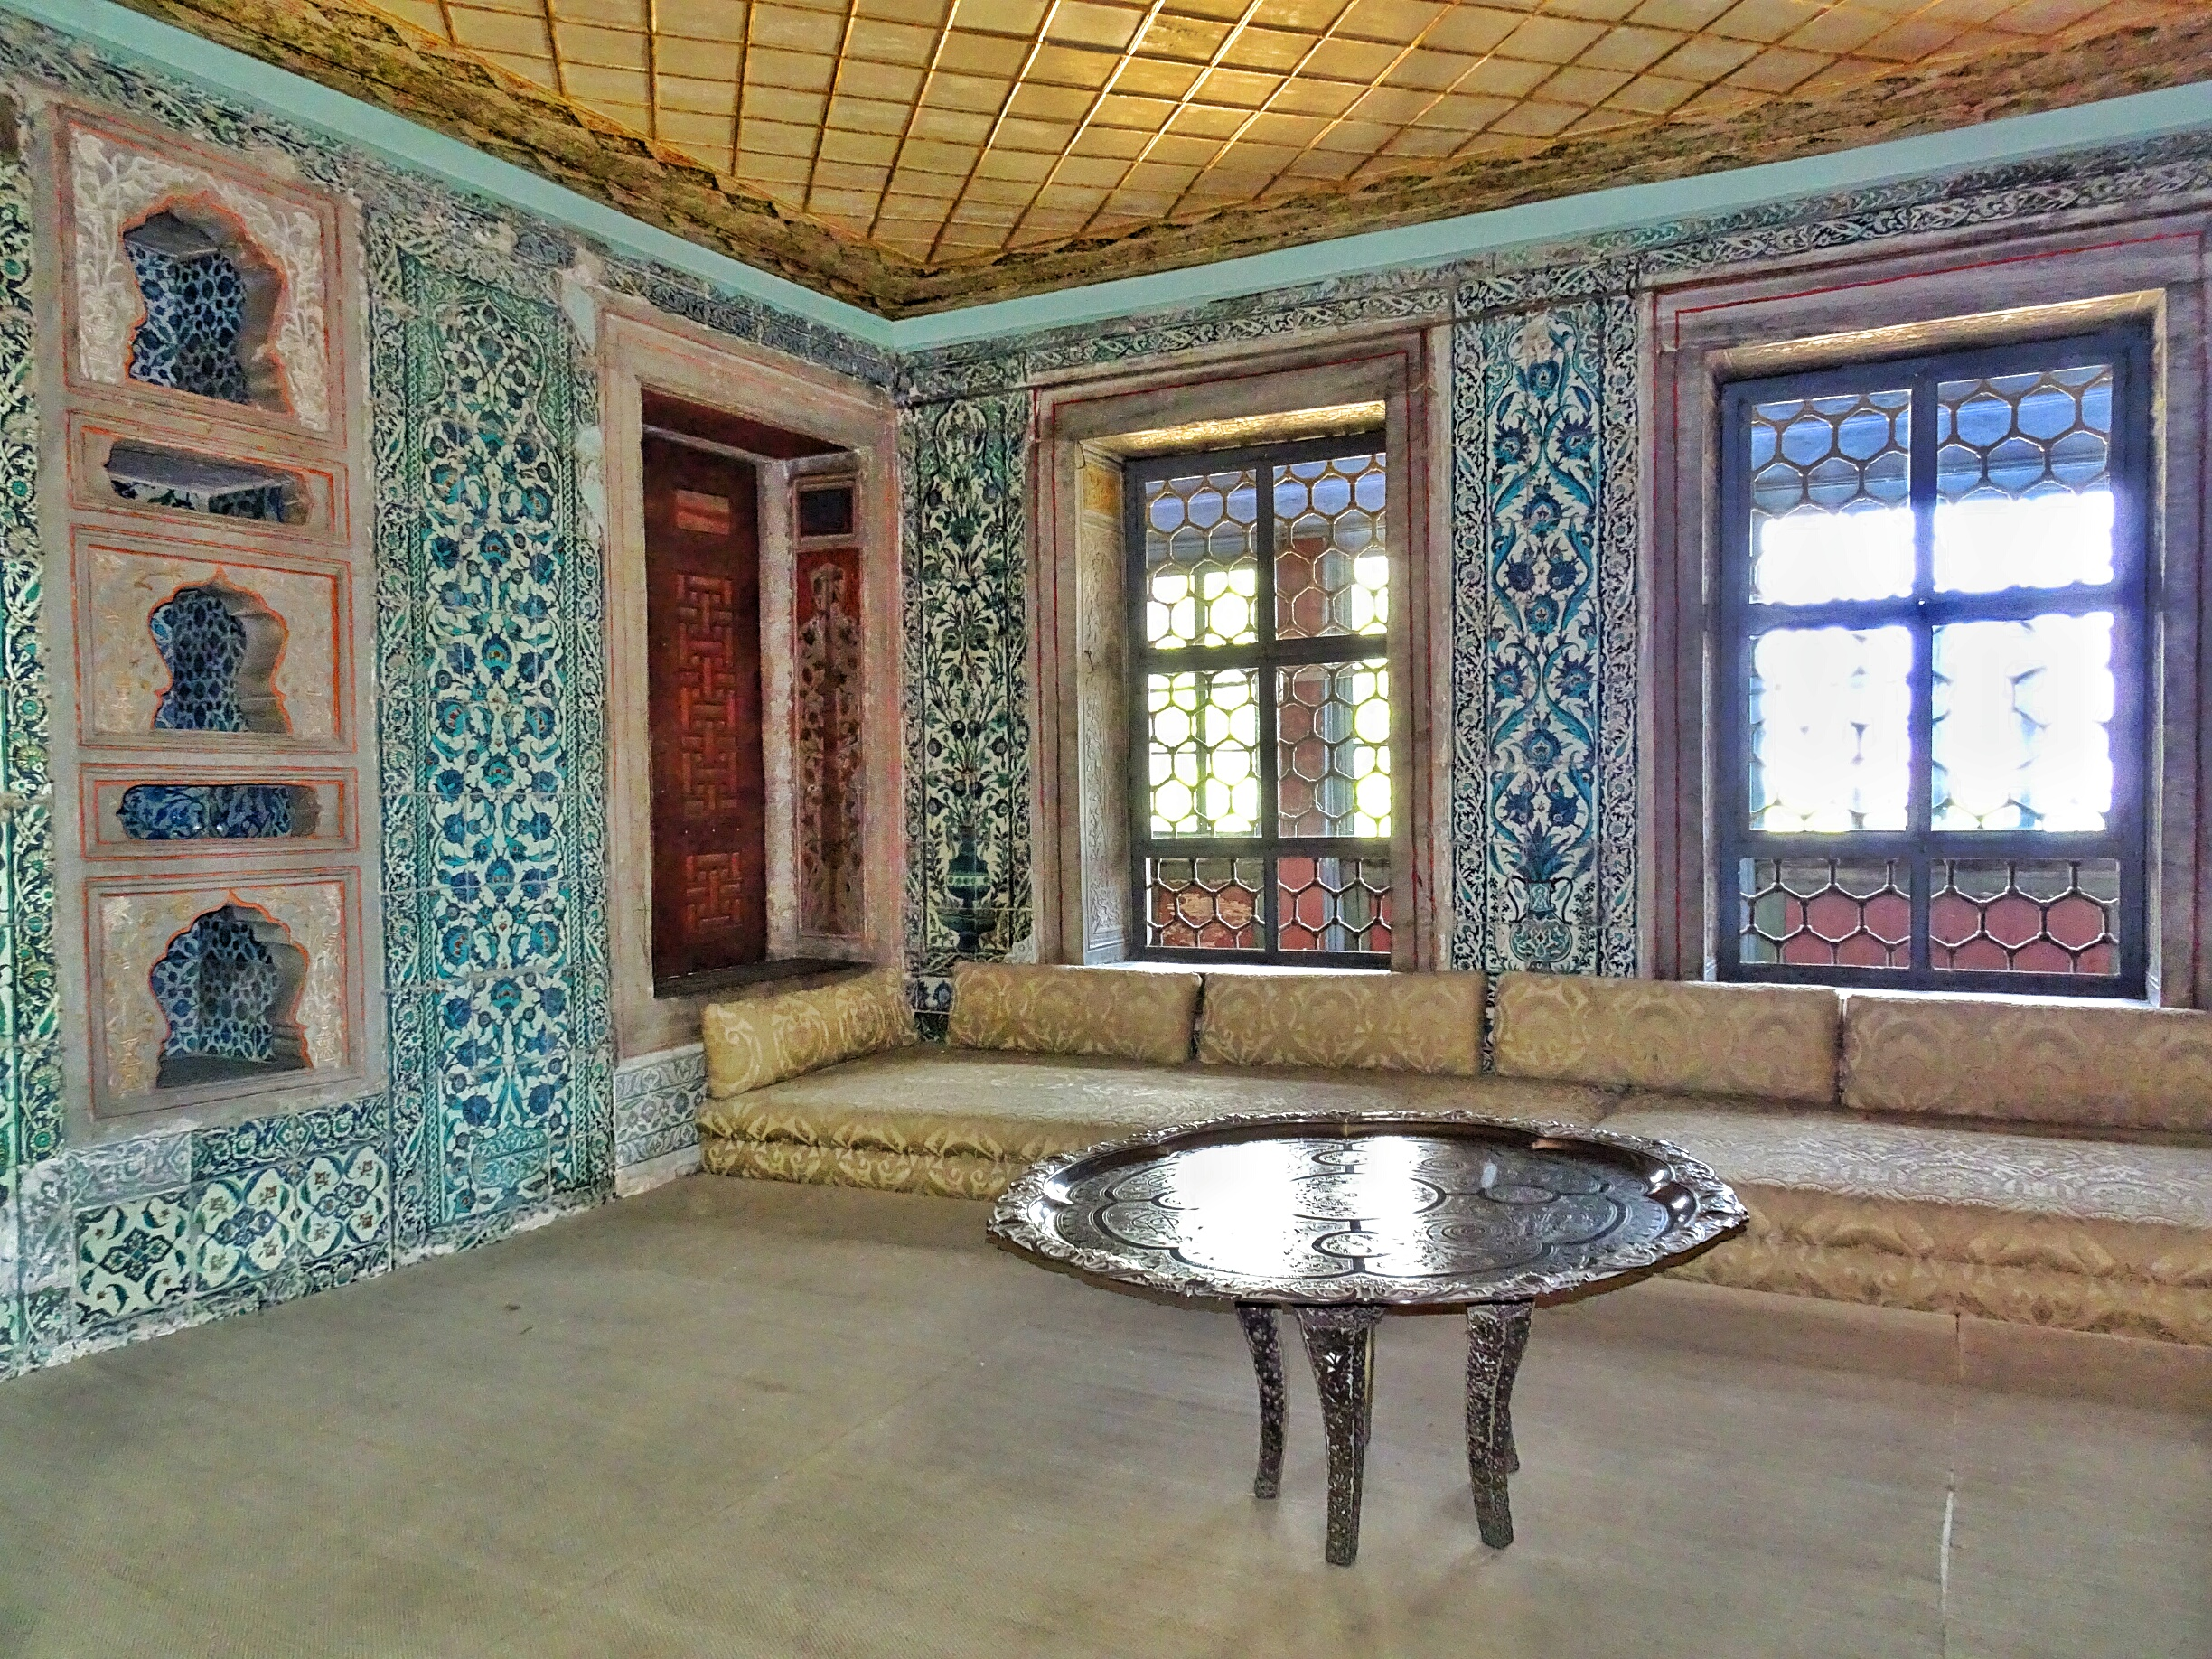 Rooms To Go Sofa Parts The Topkapi Palace And Its Harem; The Sultan's Heaven On